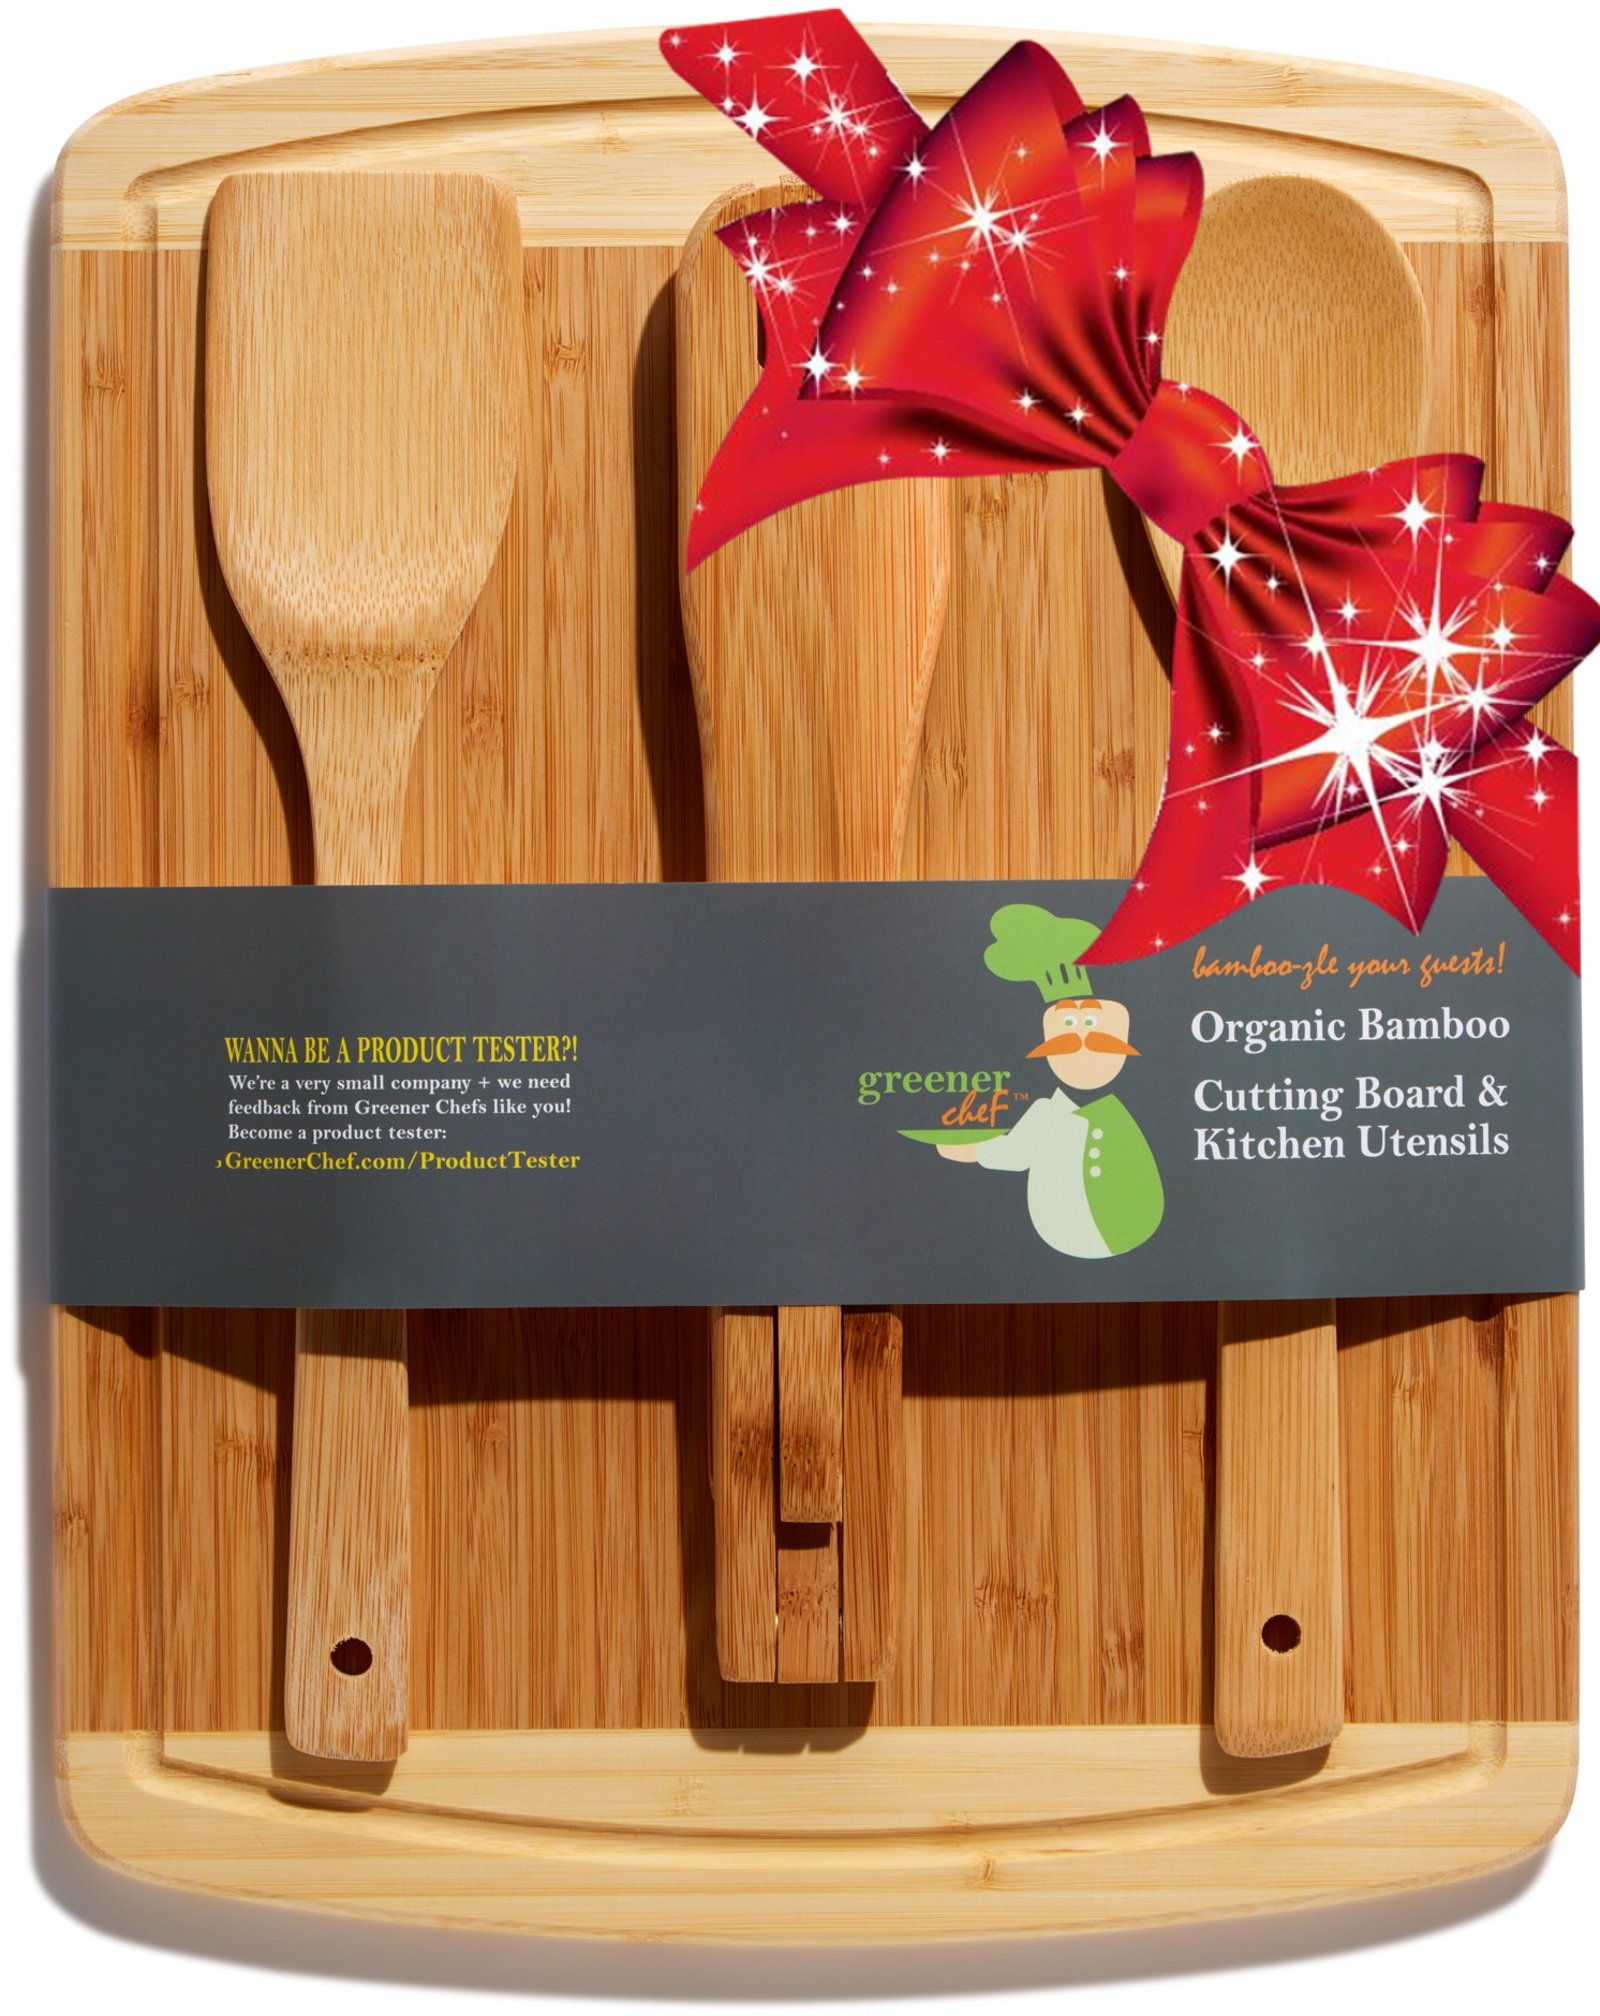 Bamboo Cutting Board Housewarming Gift Set - With Bonus 3-Piece Cooking Utensils - Wooden Spoon, Salad Tongs and Wood Spatula - Mother's Day, Wedding & Kitchen Gadgets Gift Idea